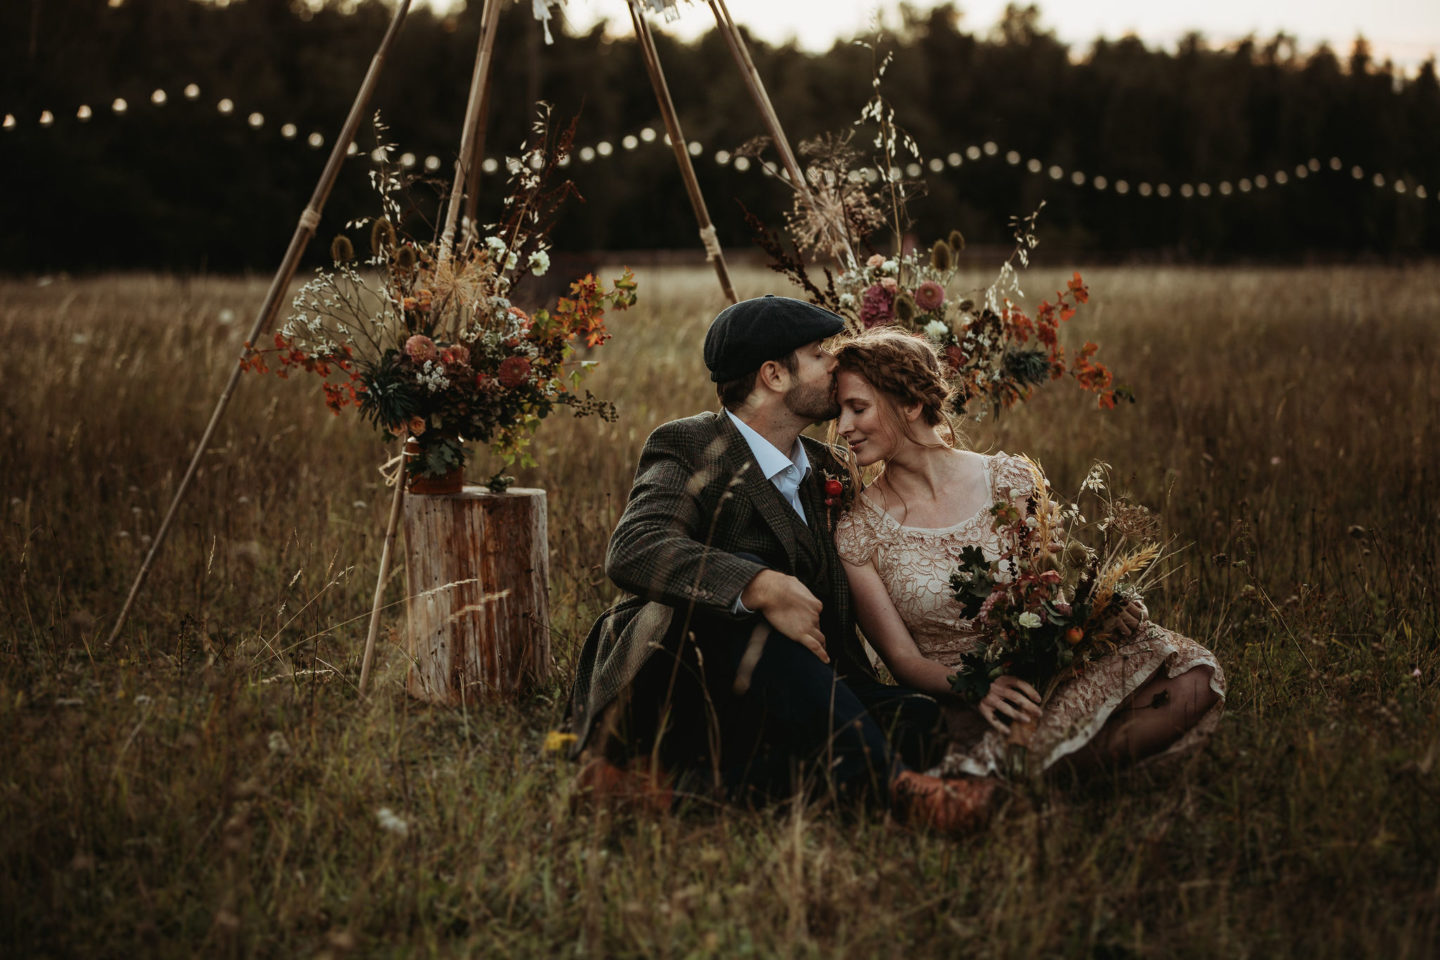 Eco-Weddding At Wellington Wood With Autumn Folklore Vibes